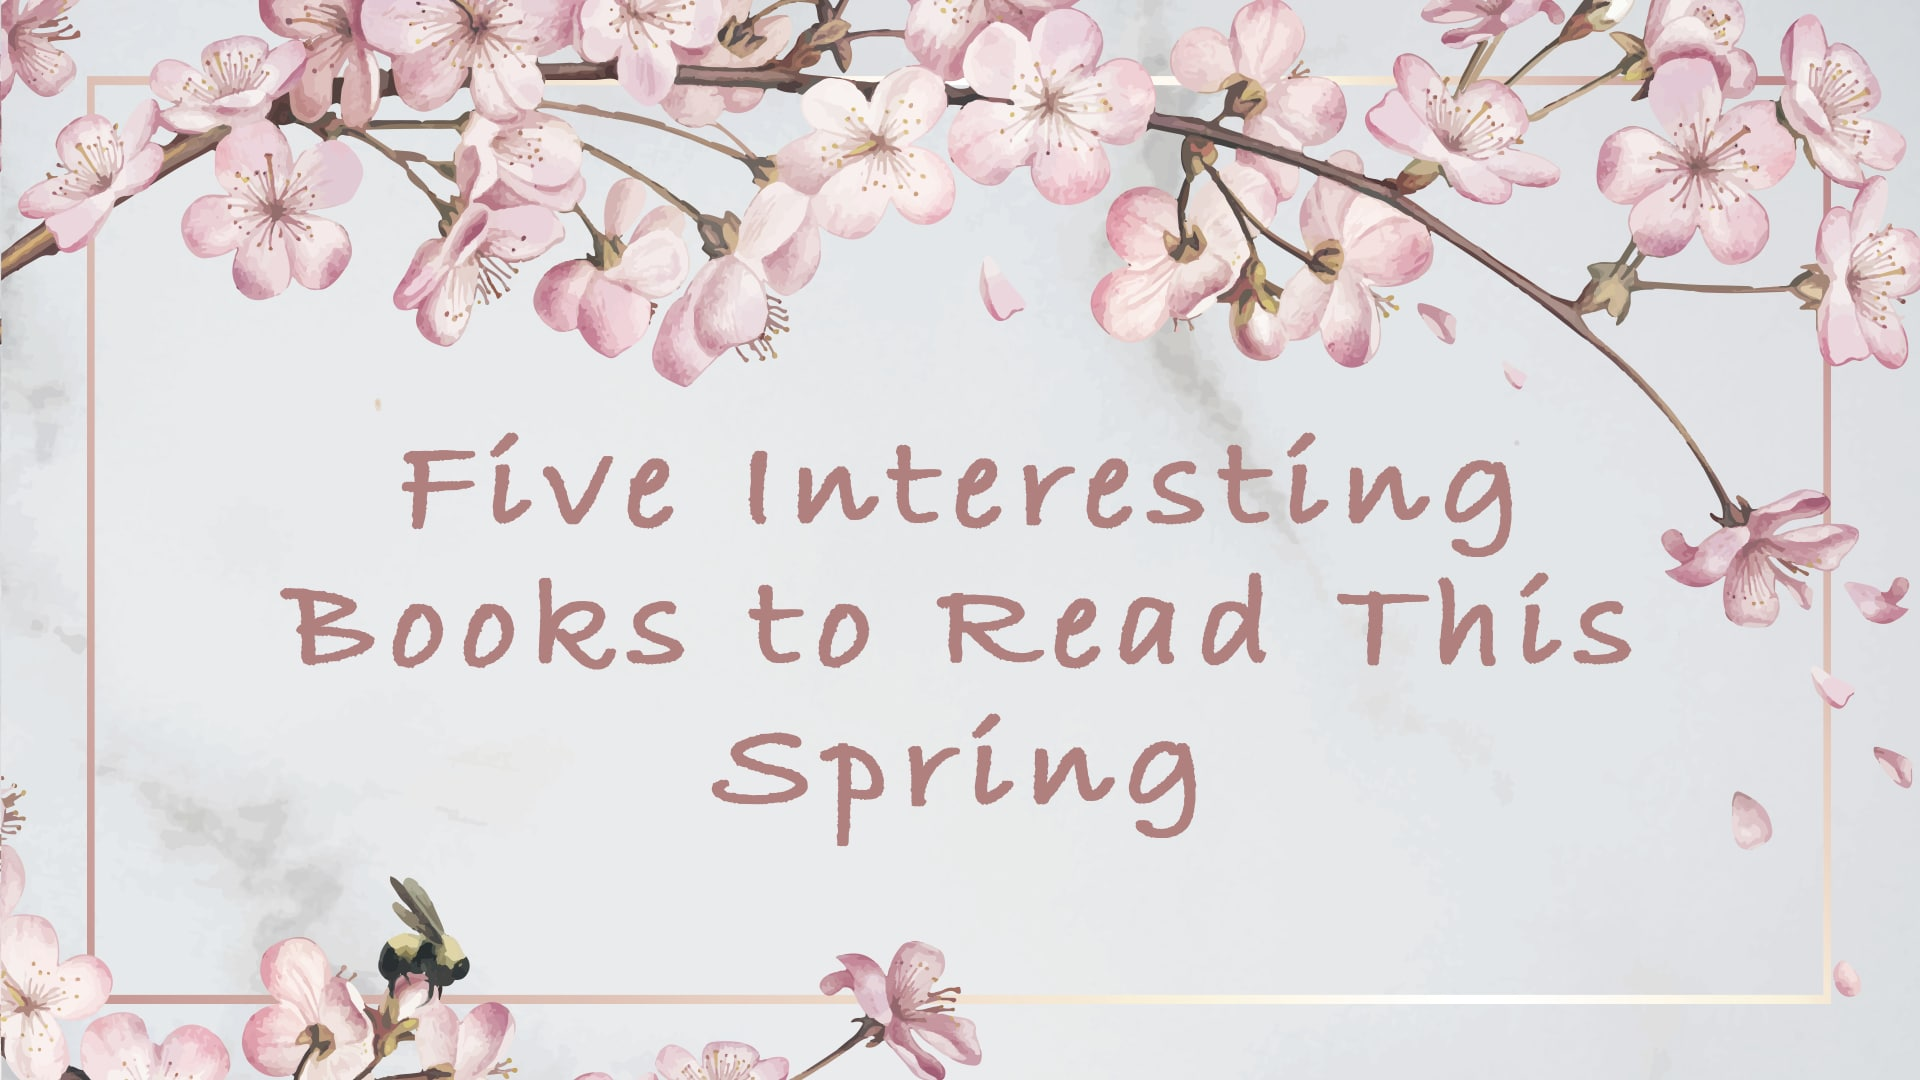 Five Interesting Books to Read This Spring banner